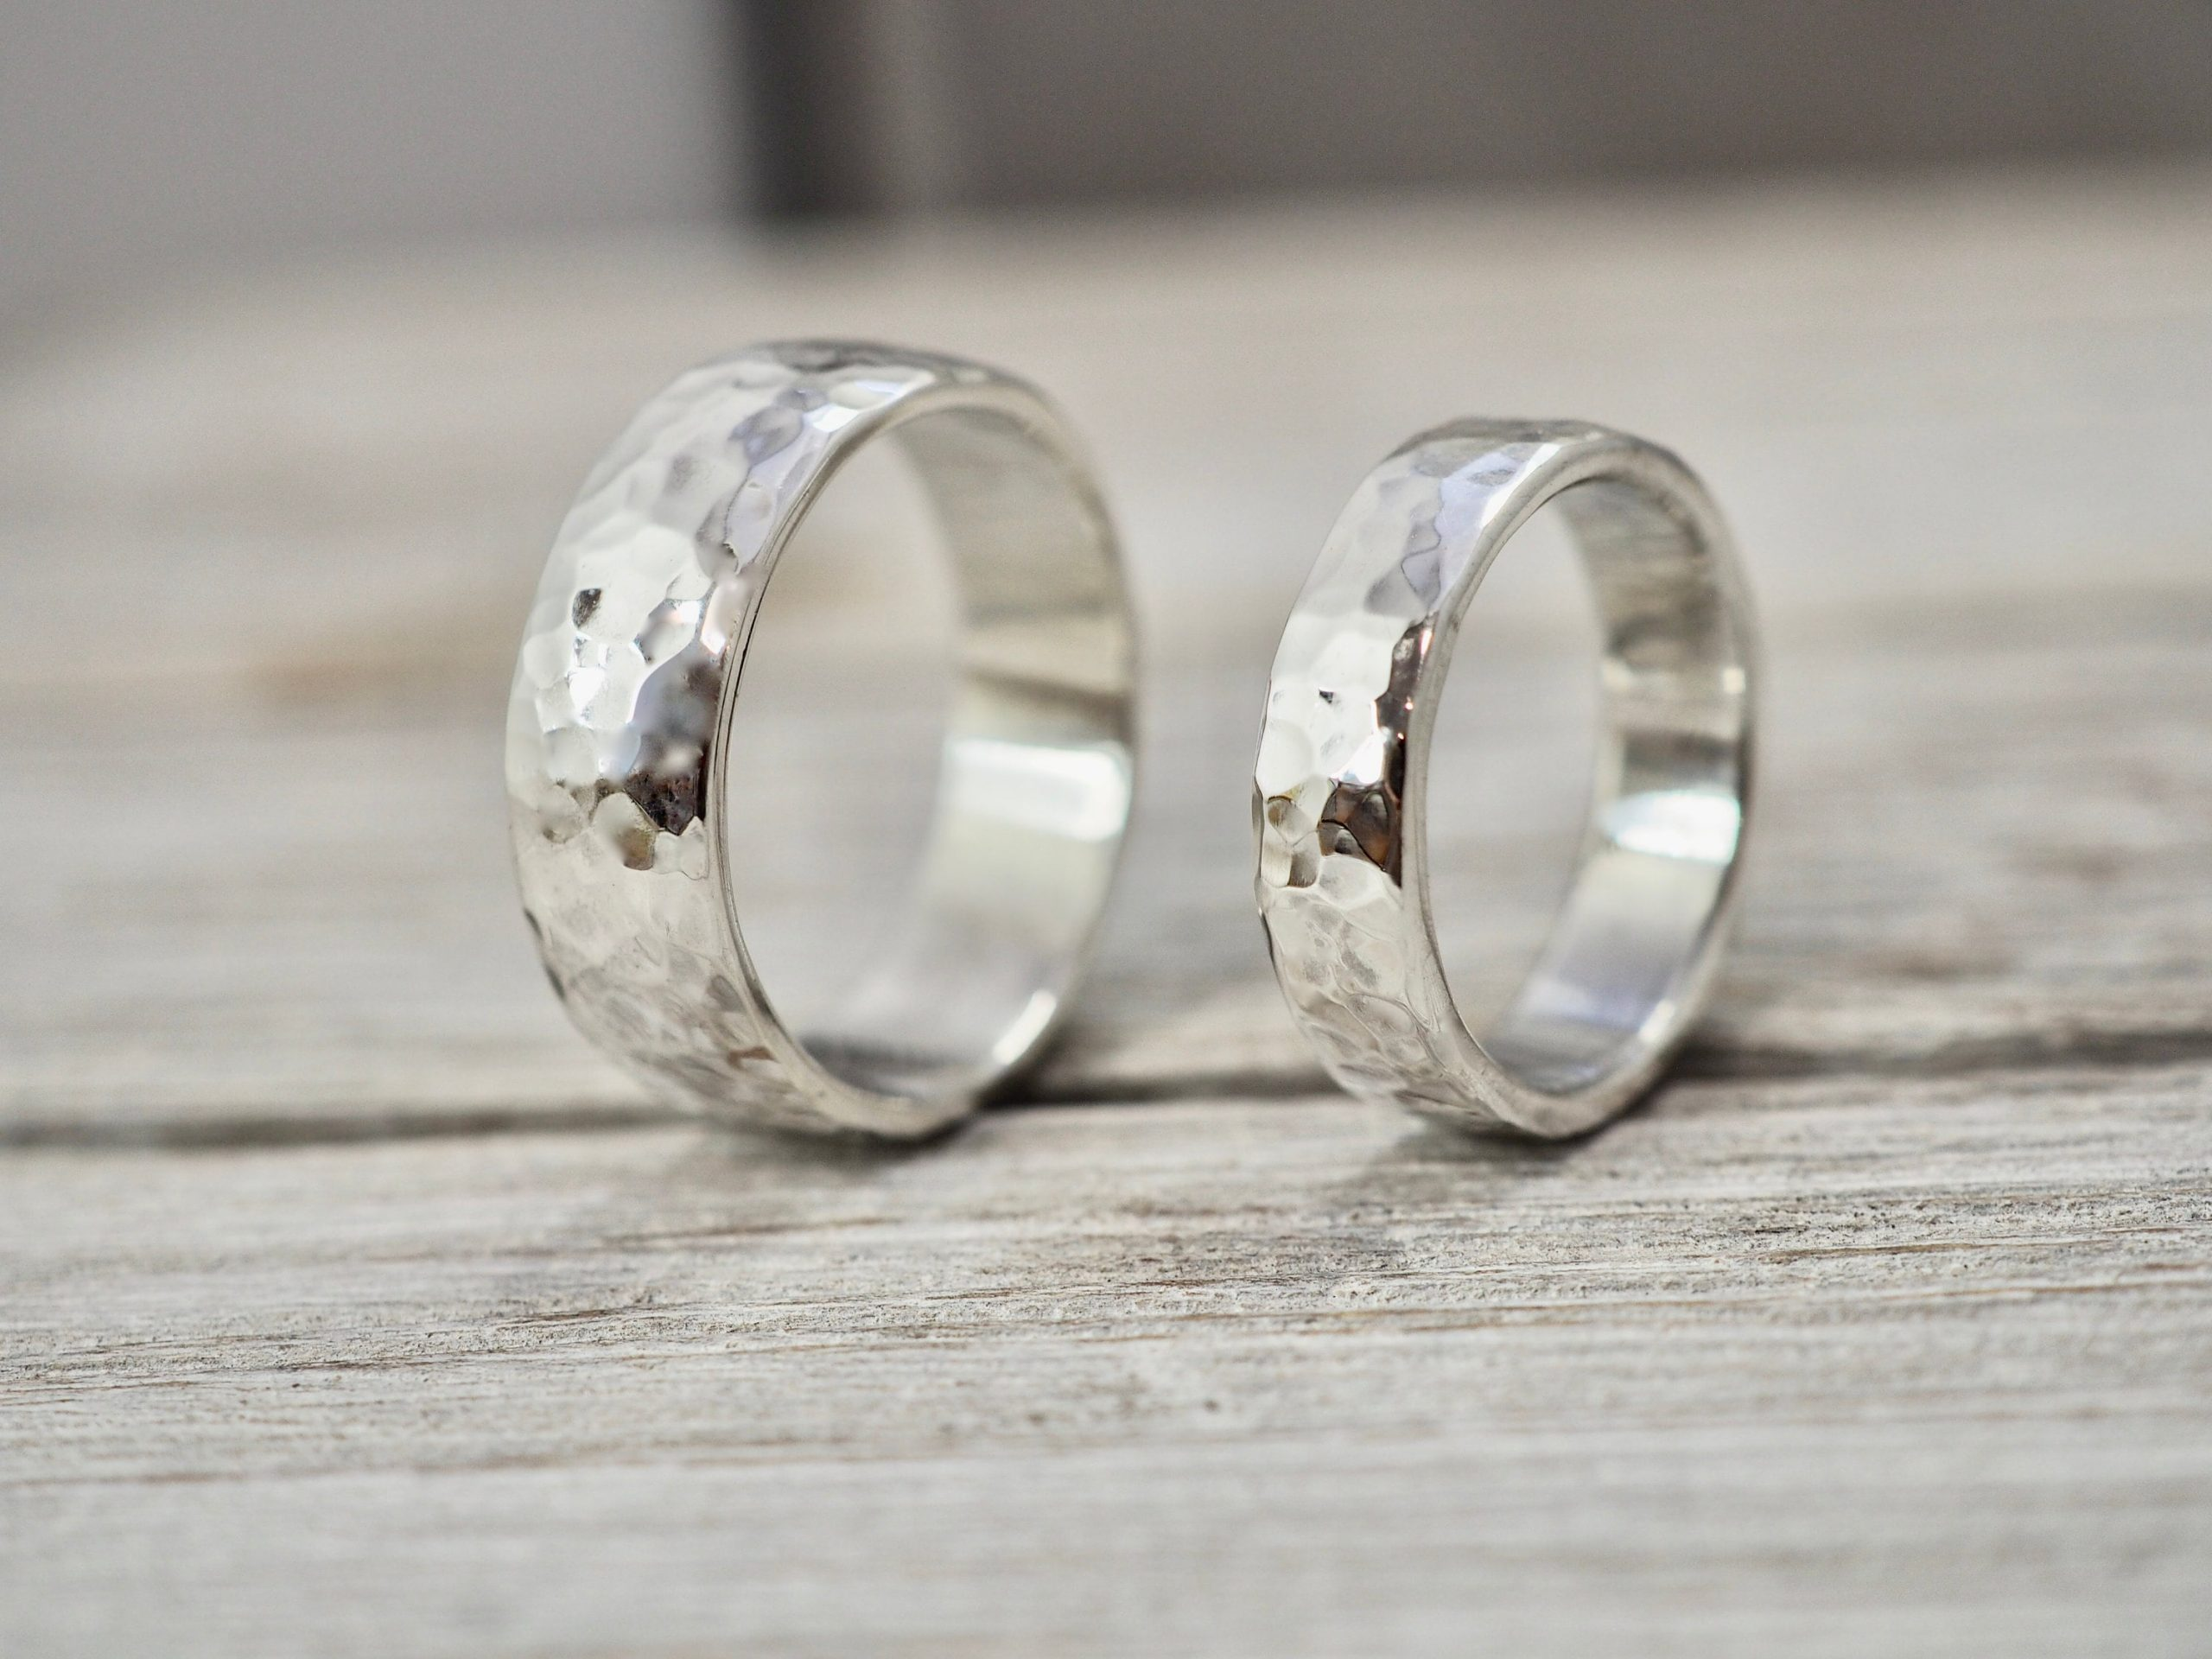 Matching Heavy Silver Wedding Bands | Chunky Ring Set Silver Rings Handmade His & Her